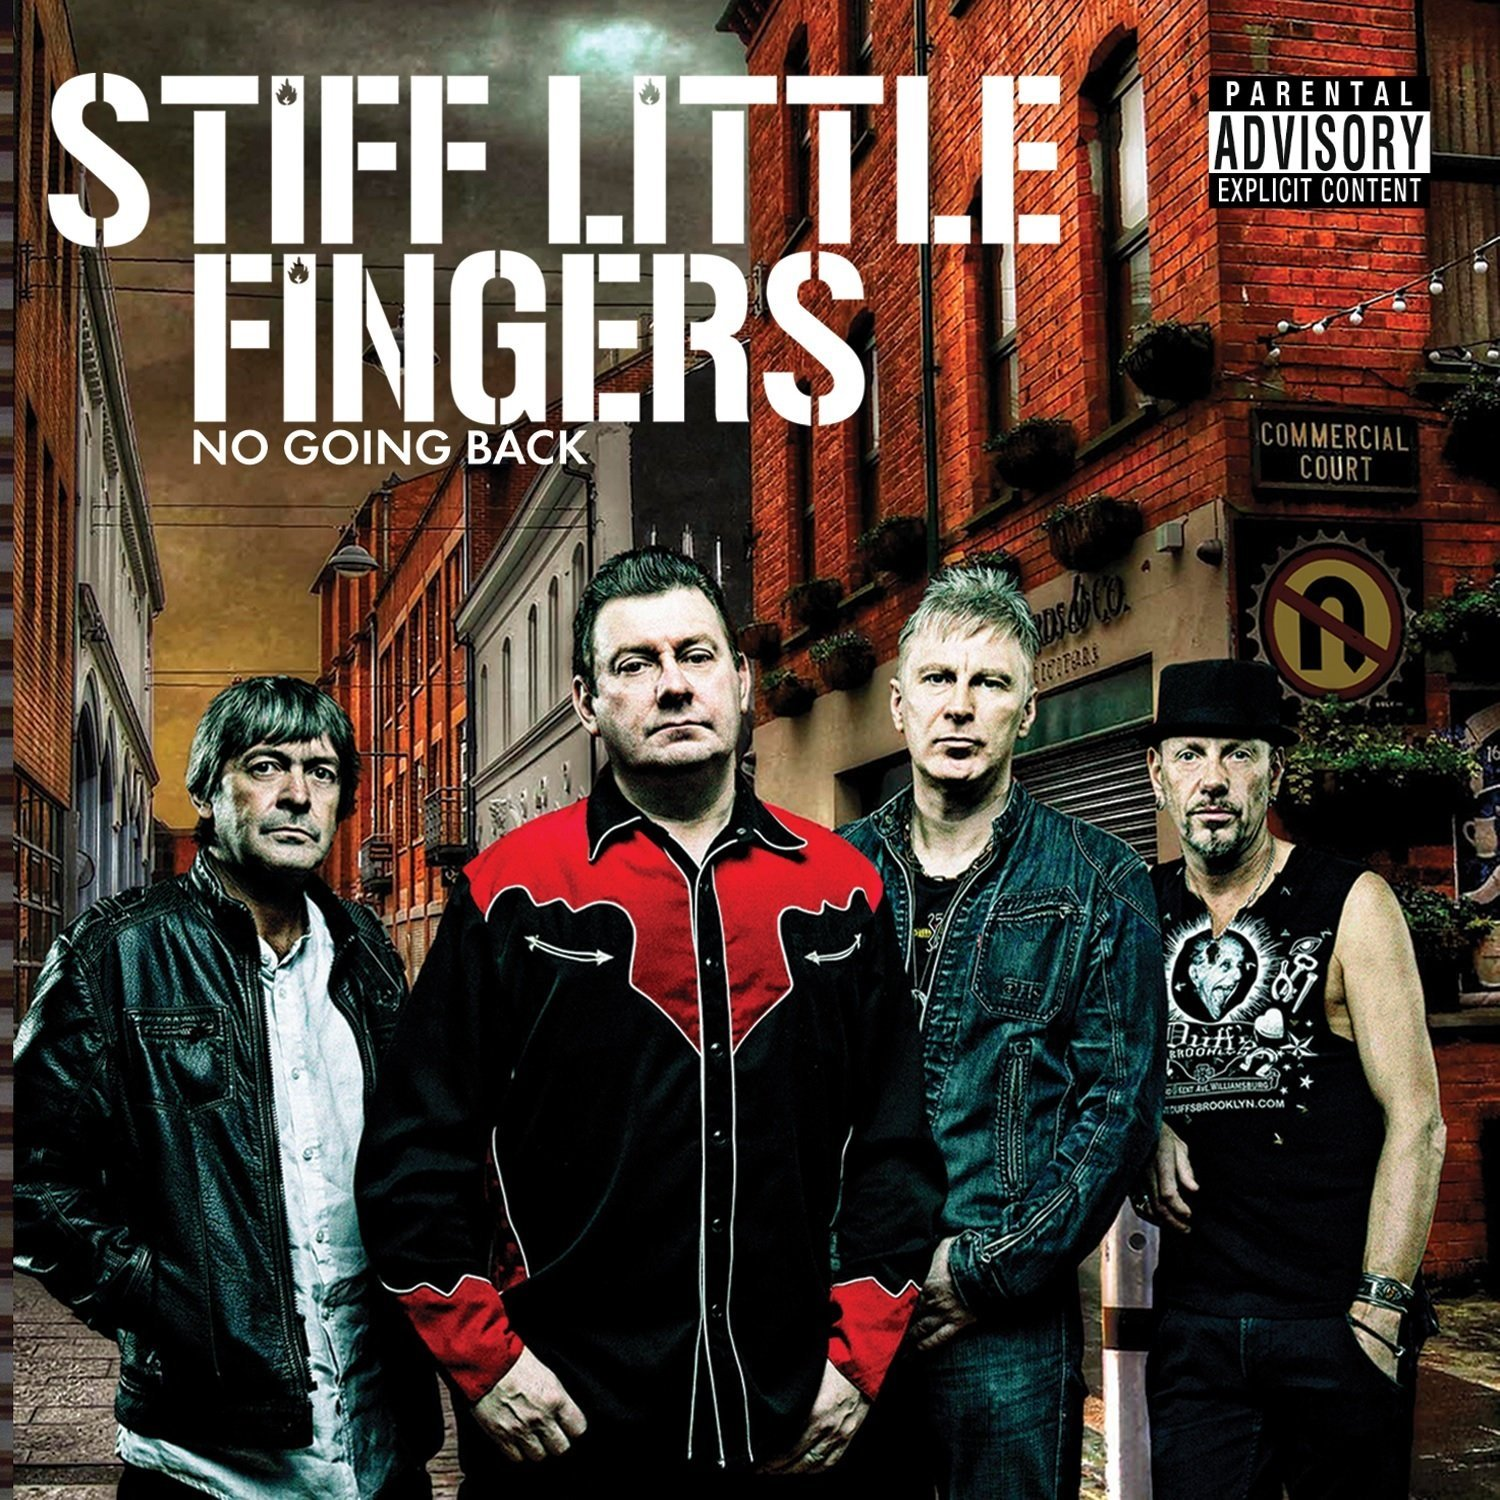 Stiff Little Fingers - No Going Back (AE)